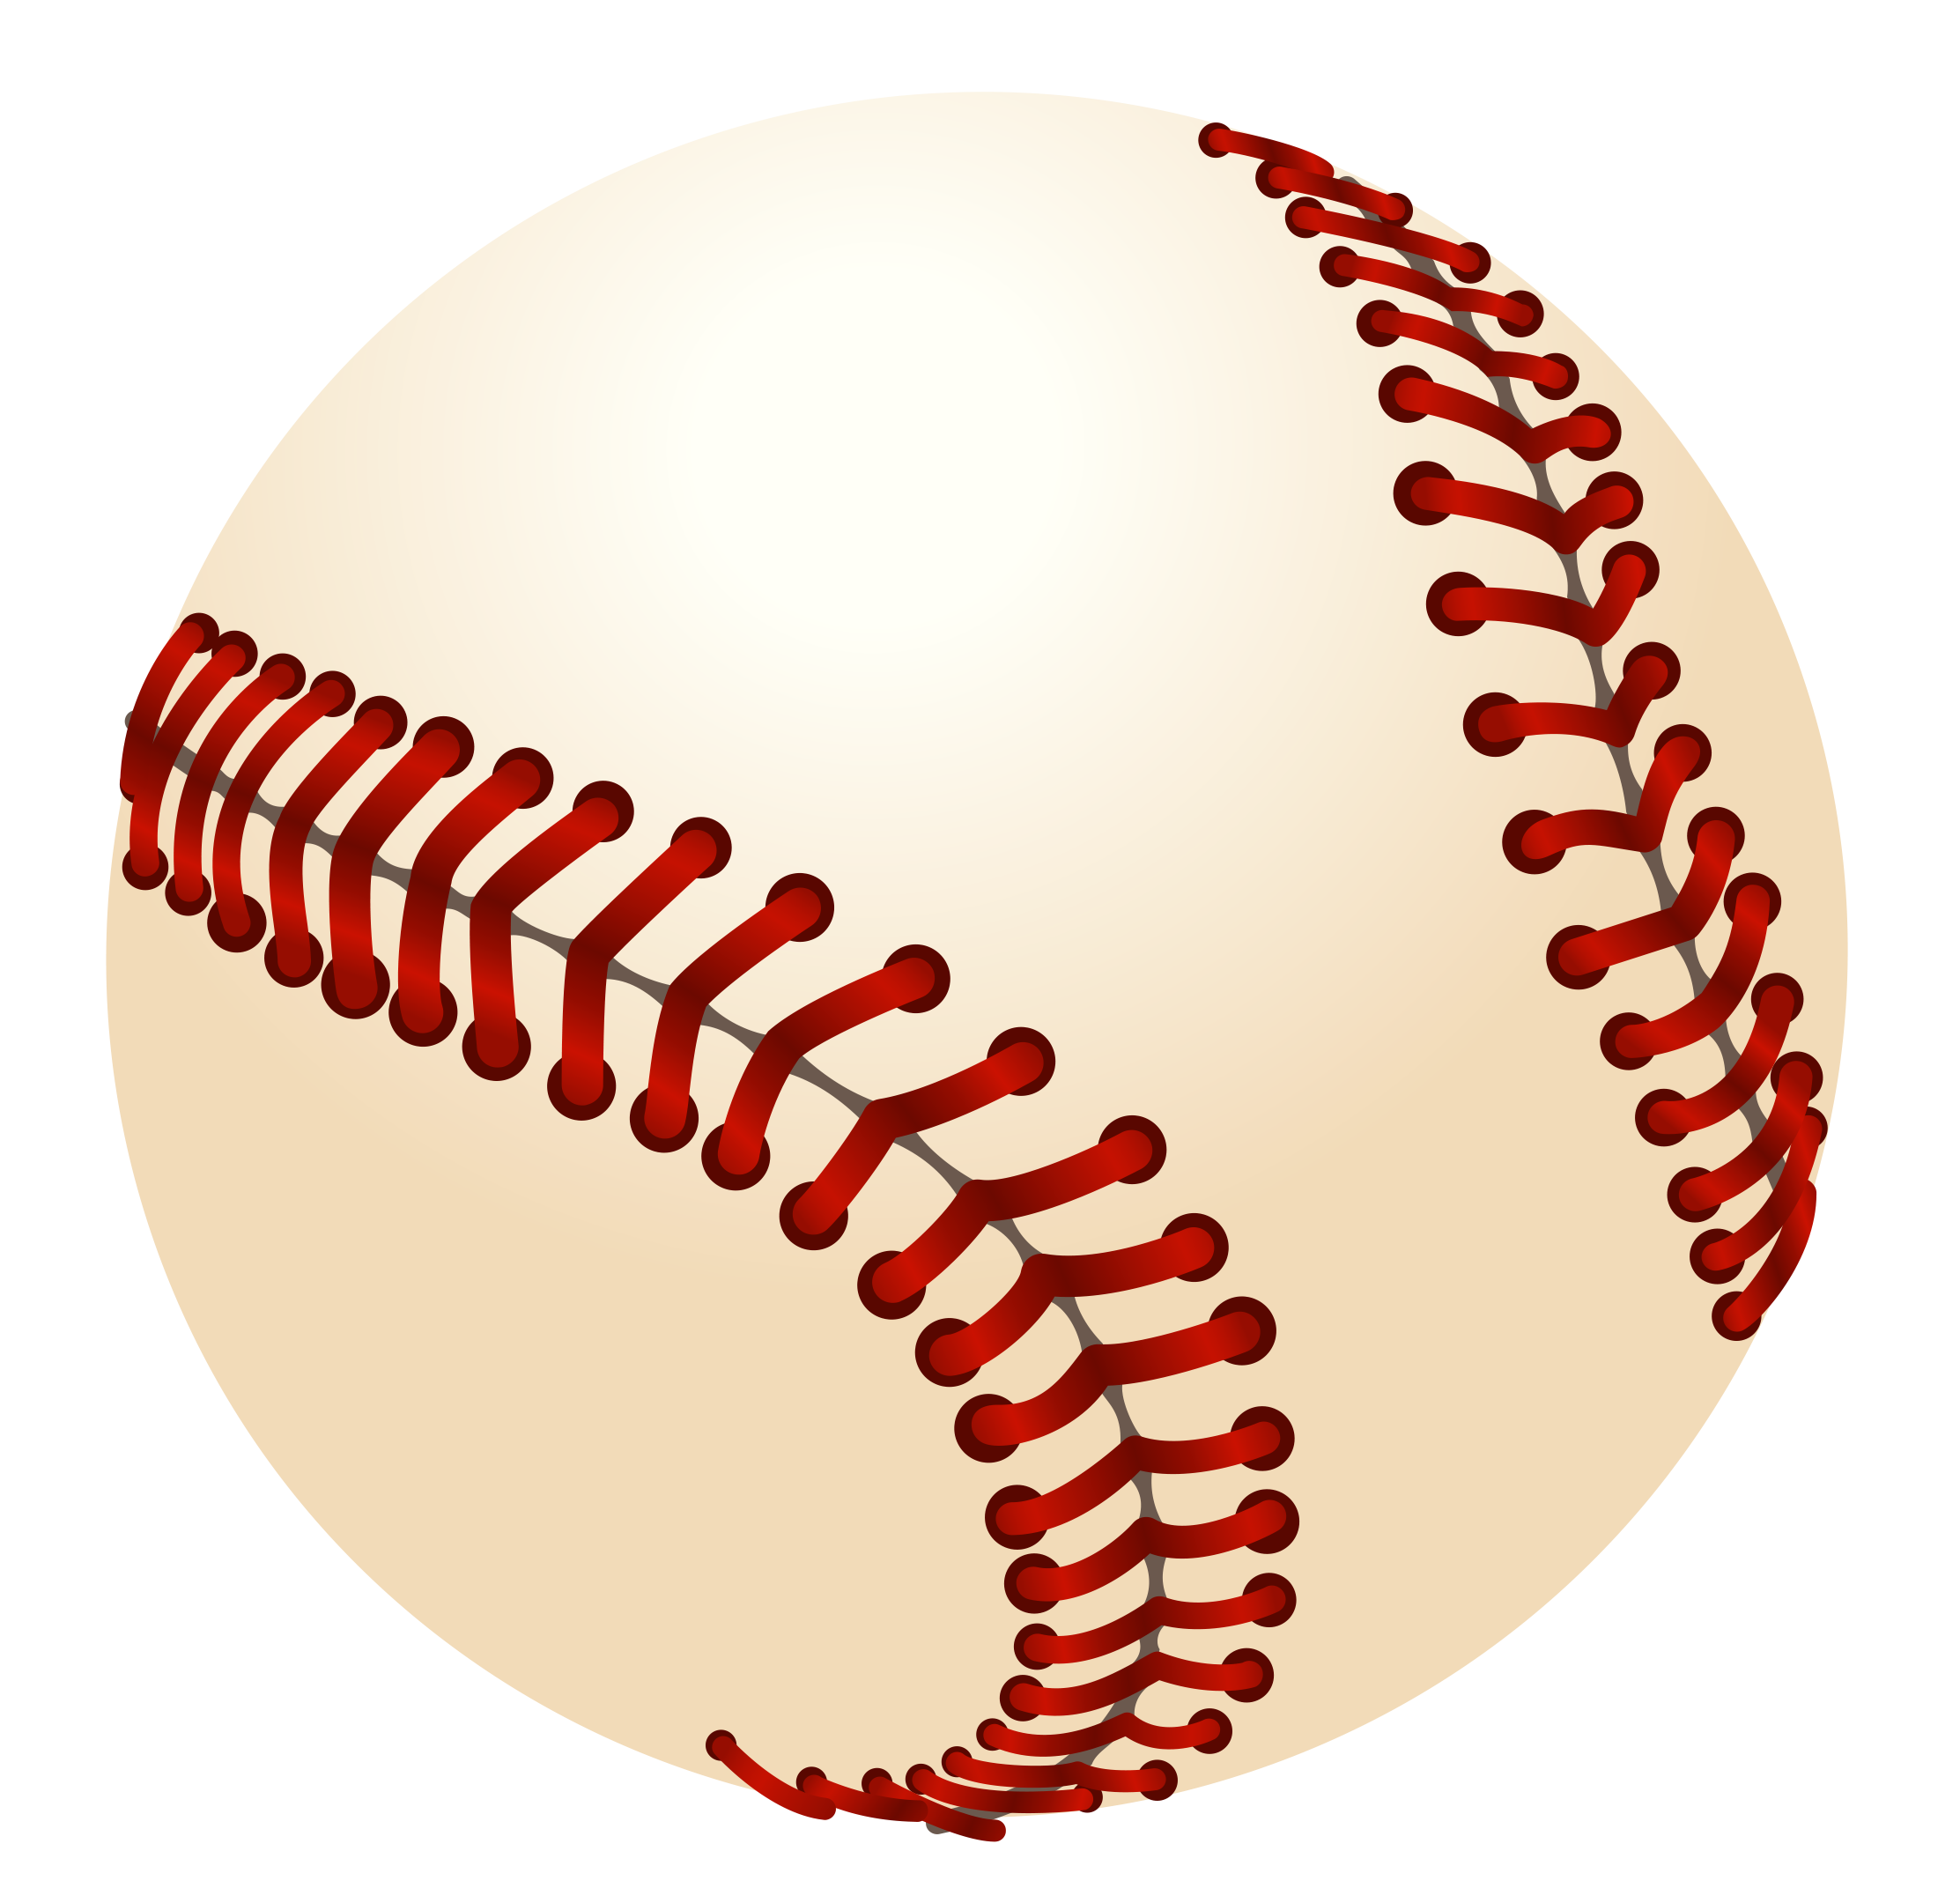 jpg freeuse library Ball png clipart picture. Baseball clip transparent